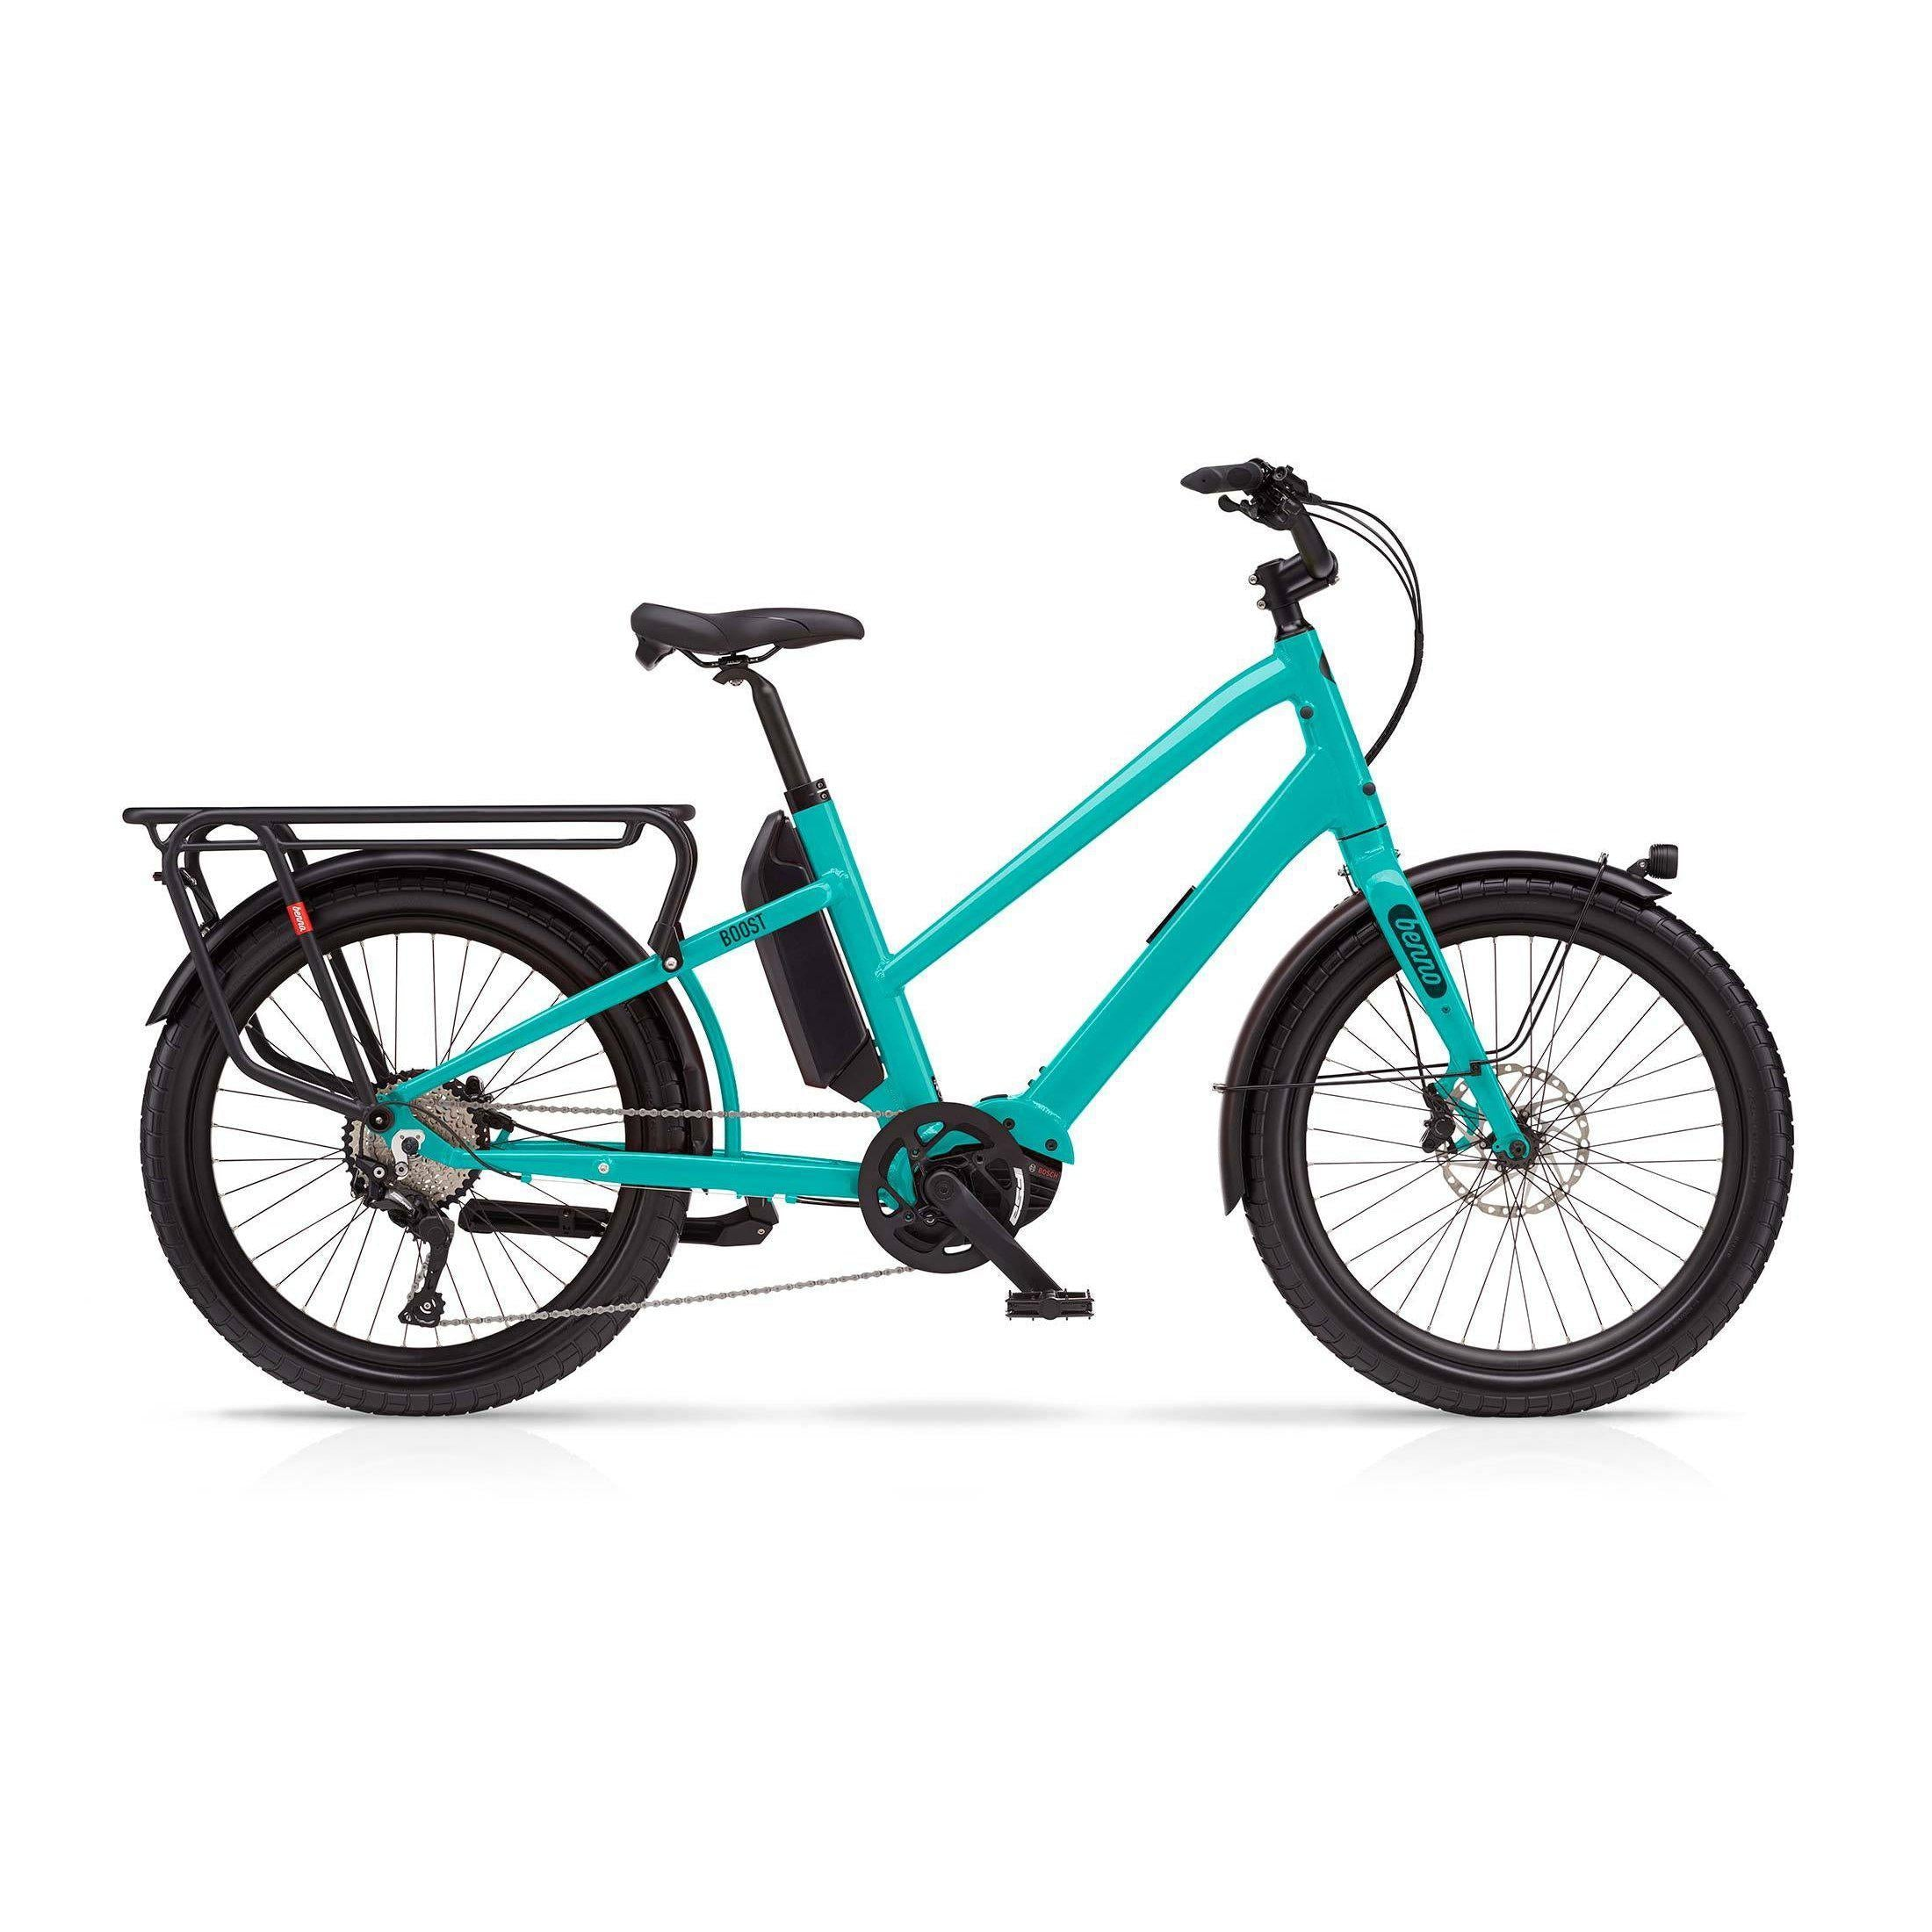 Benno Boost E 10D Speed Step Through-Oregon E-Bikes